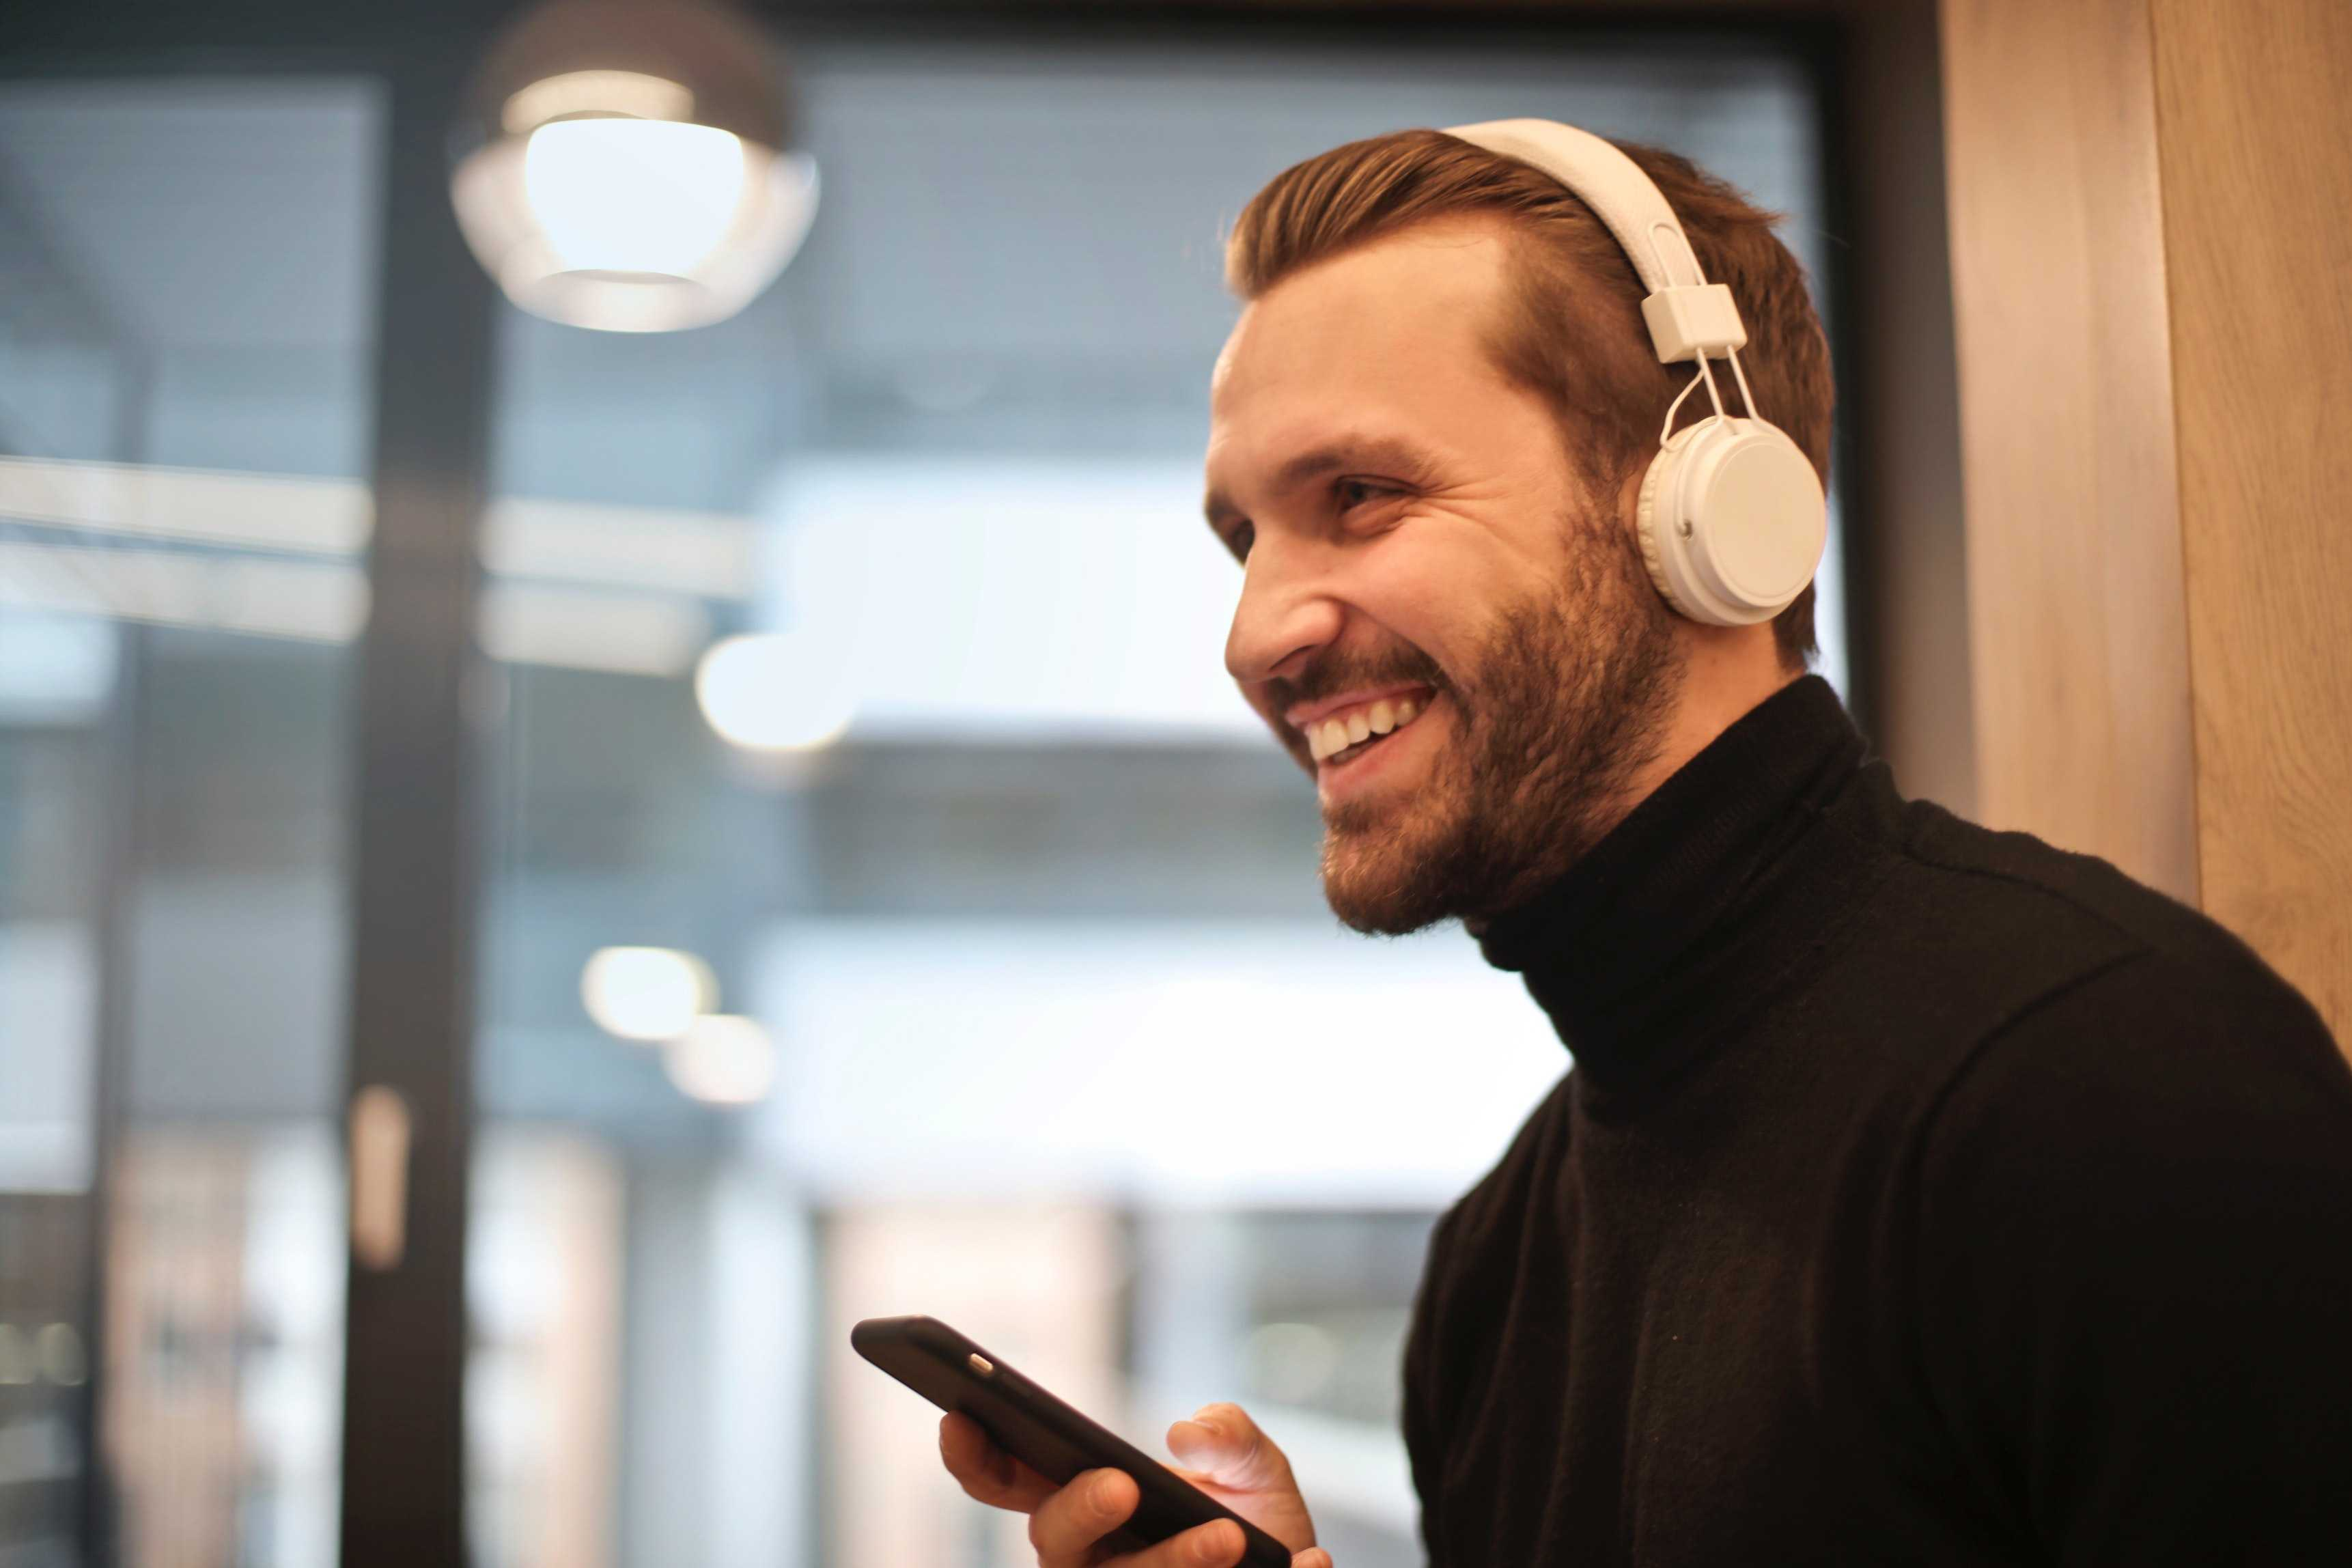 Man speaking on phone with headphones